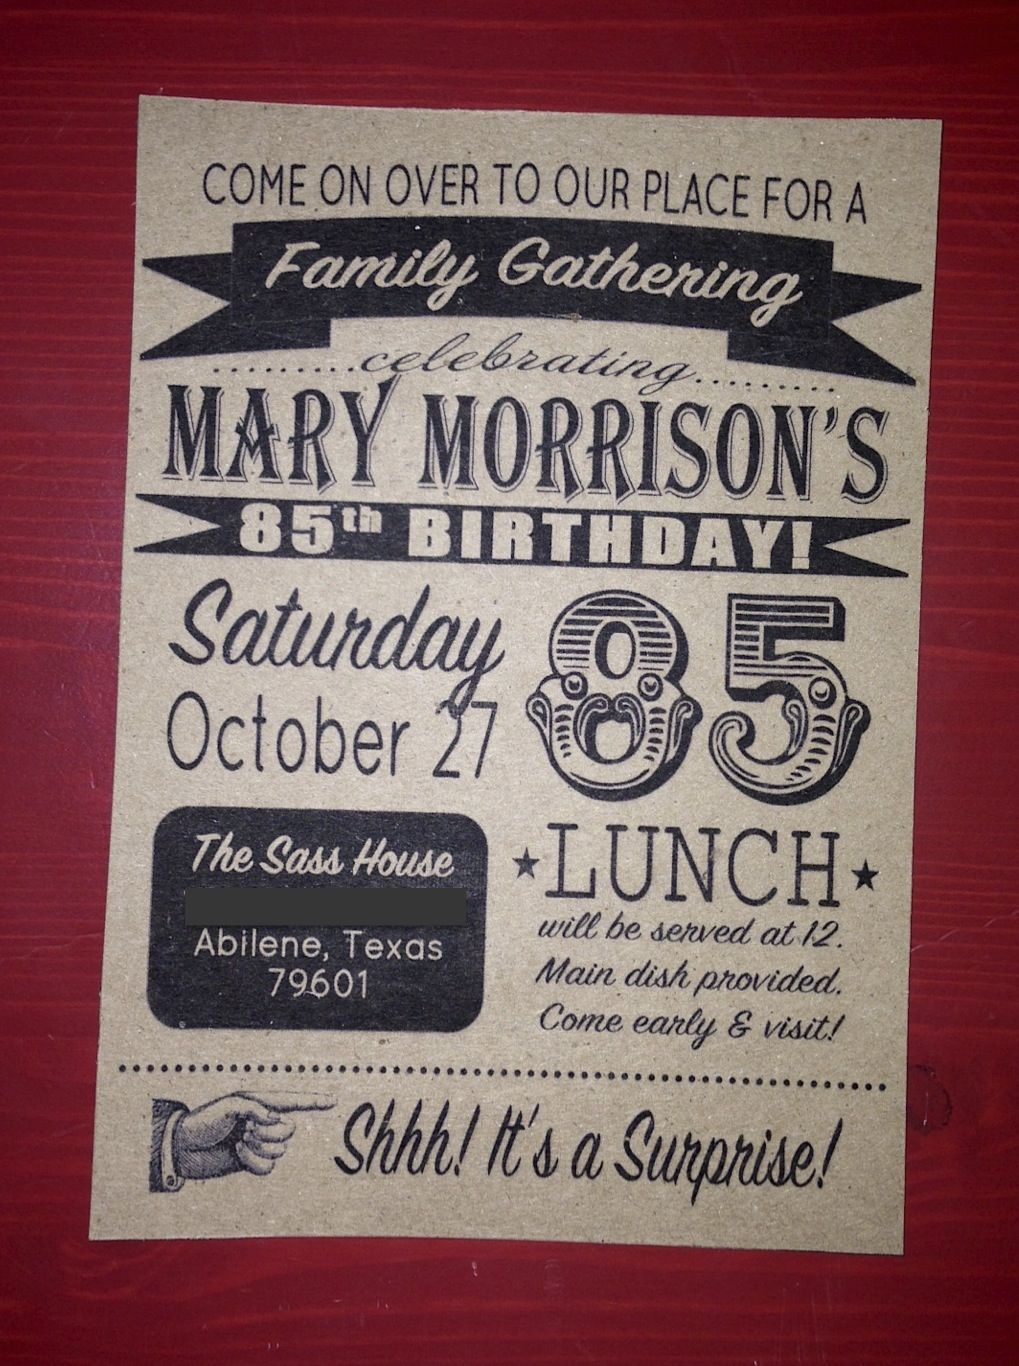 Surprise Party Invitation | ayreshome.blogspot.com | Pinterest ...